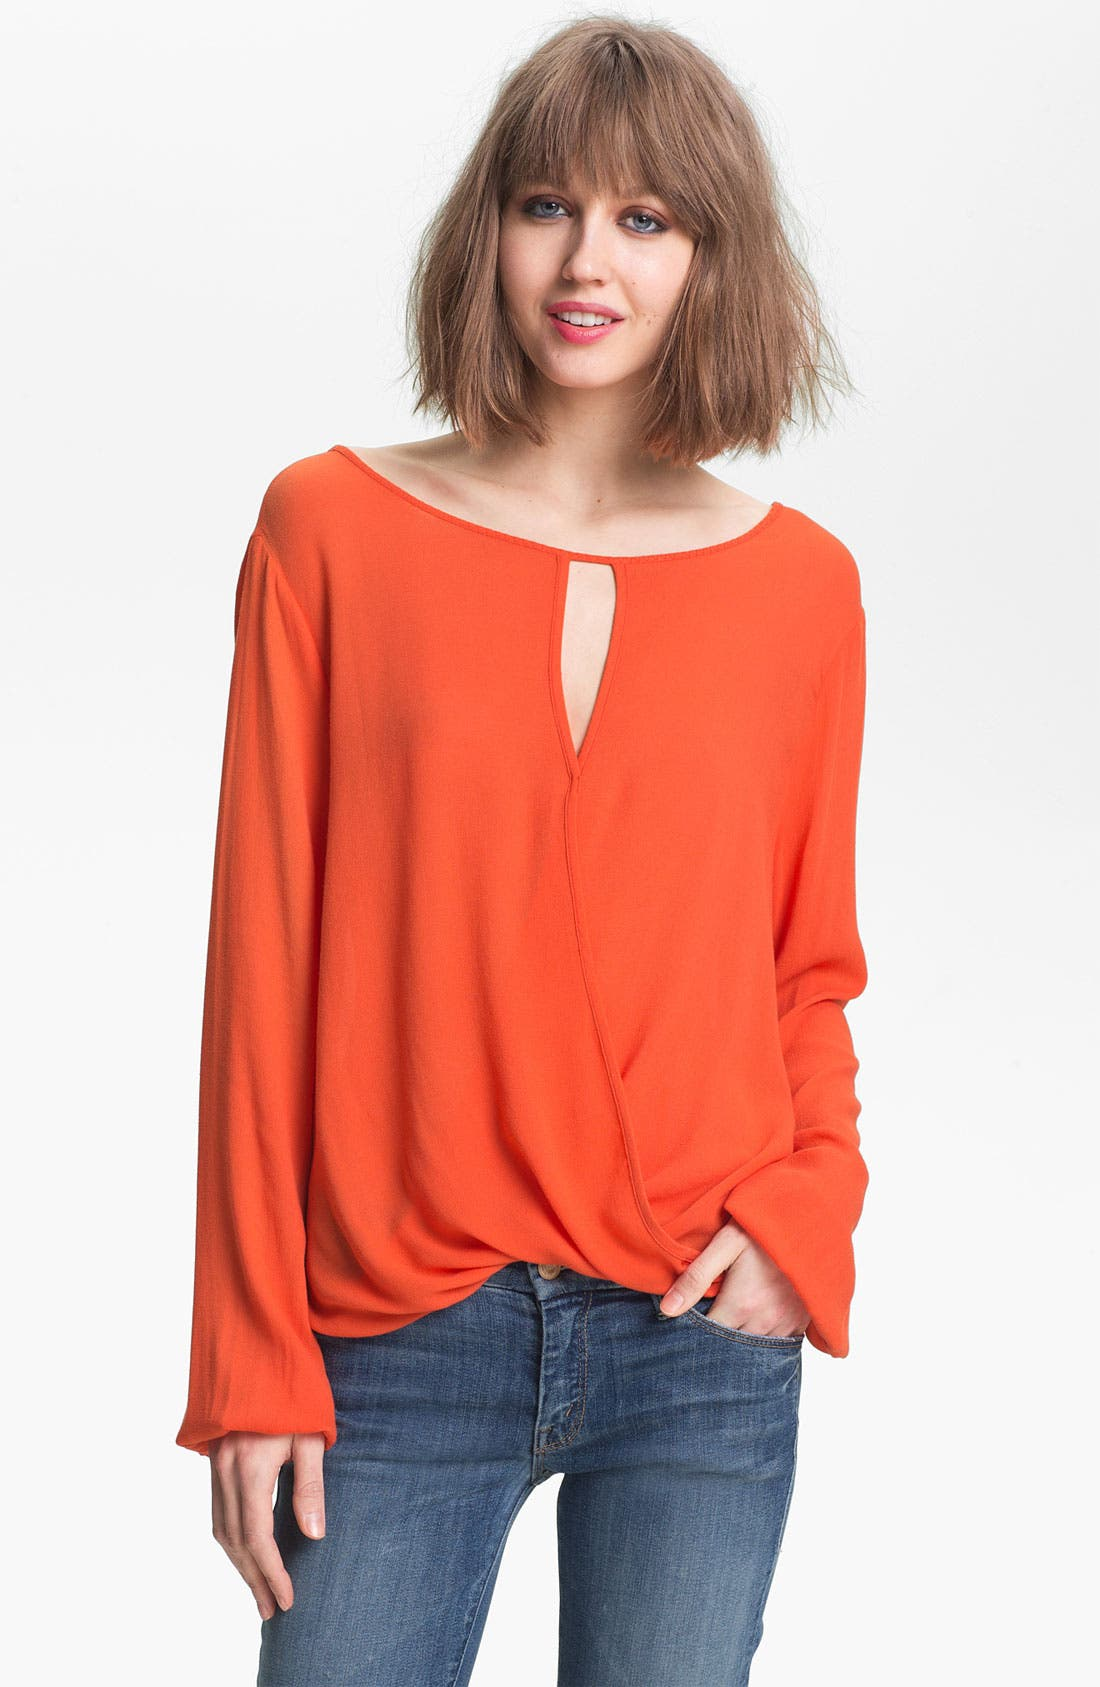 Alternate Image 1 Selected - Ella Moss 'Stella' Keyhole Neck Surplice Top